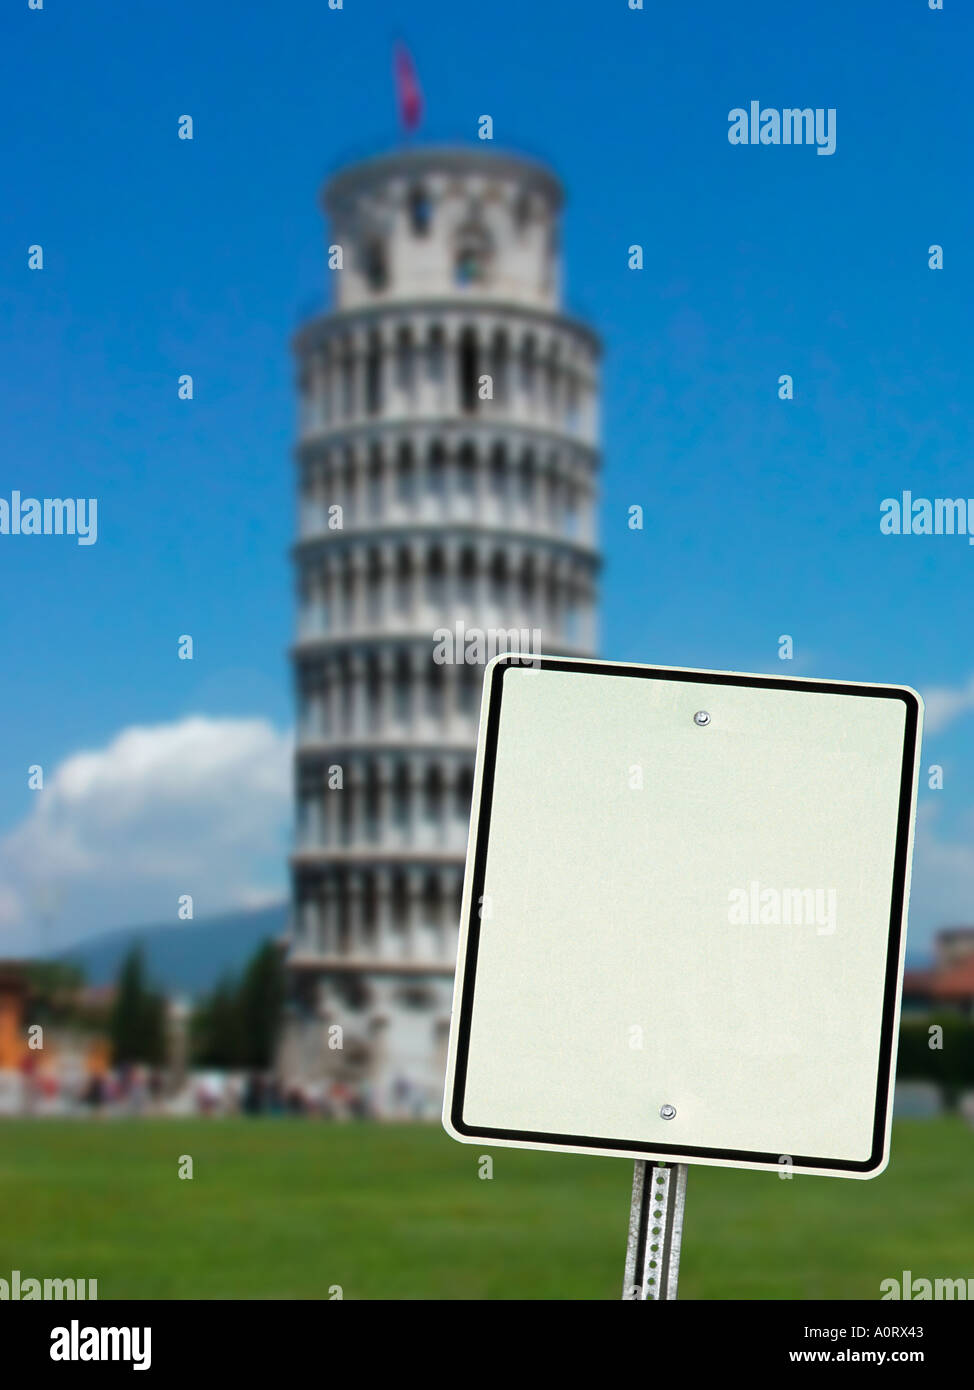 Blank sign leaning to one side with Leaning Tower of Pisa straight up in background one image in series of three - Stock Image